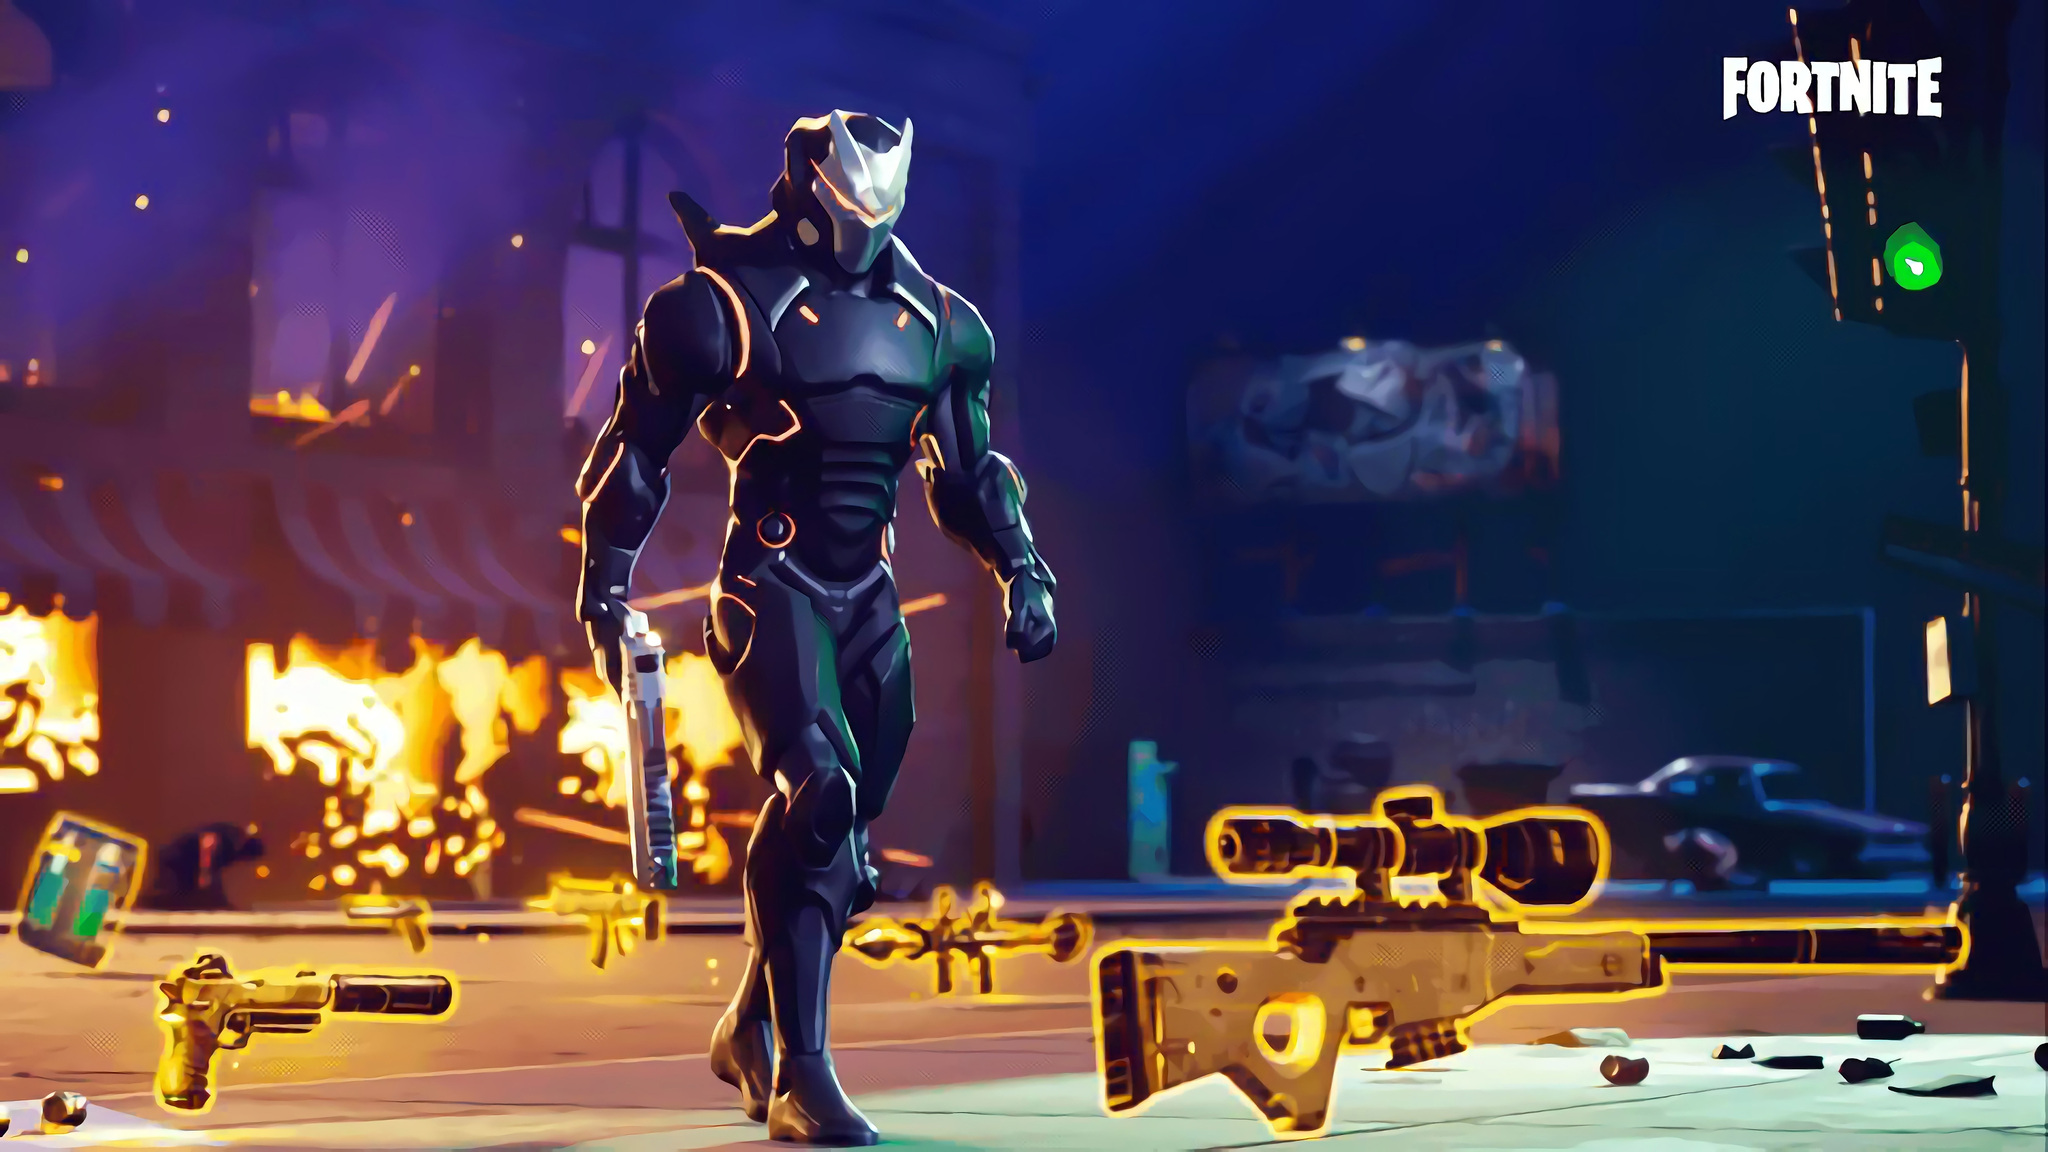 2048x1152 Fortnite Season 5 Omega 2048x1152 Resolution HD 4k     fortnite season 5 omega 8y jpg